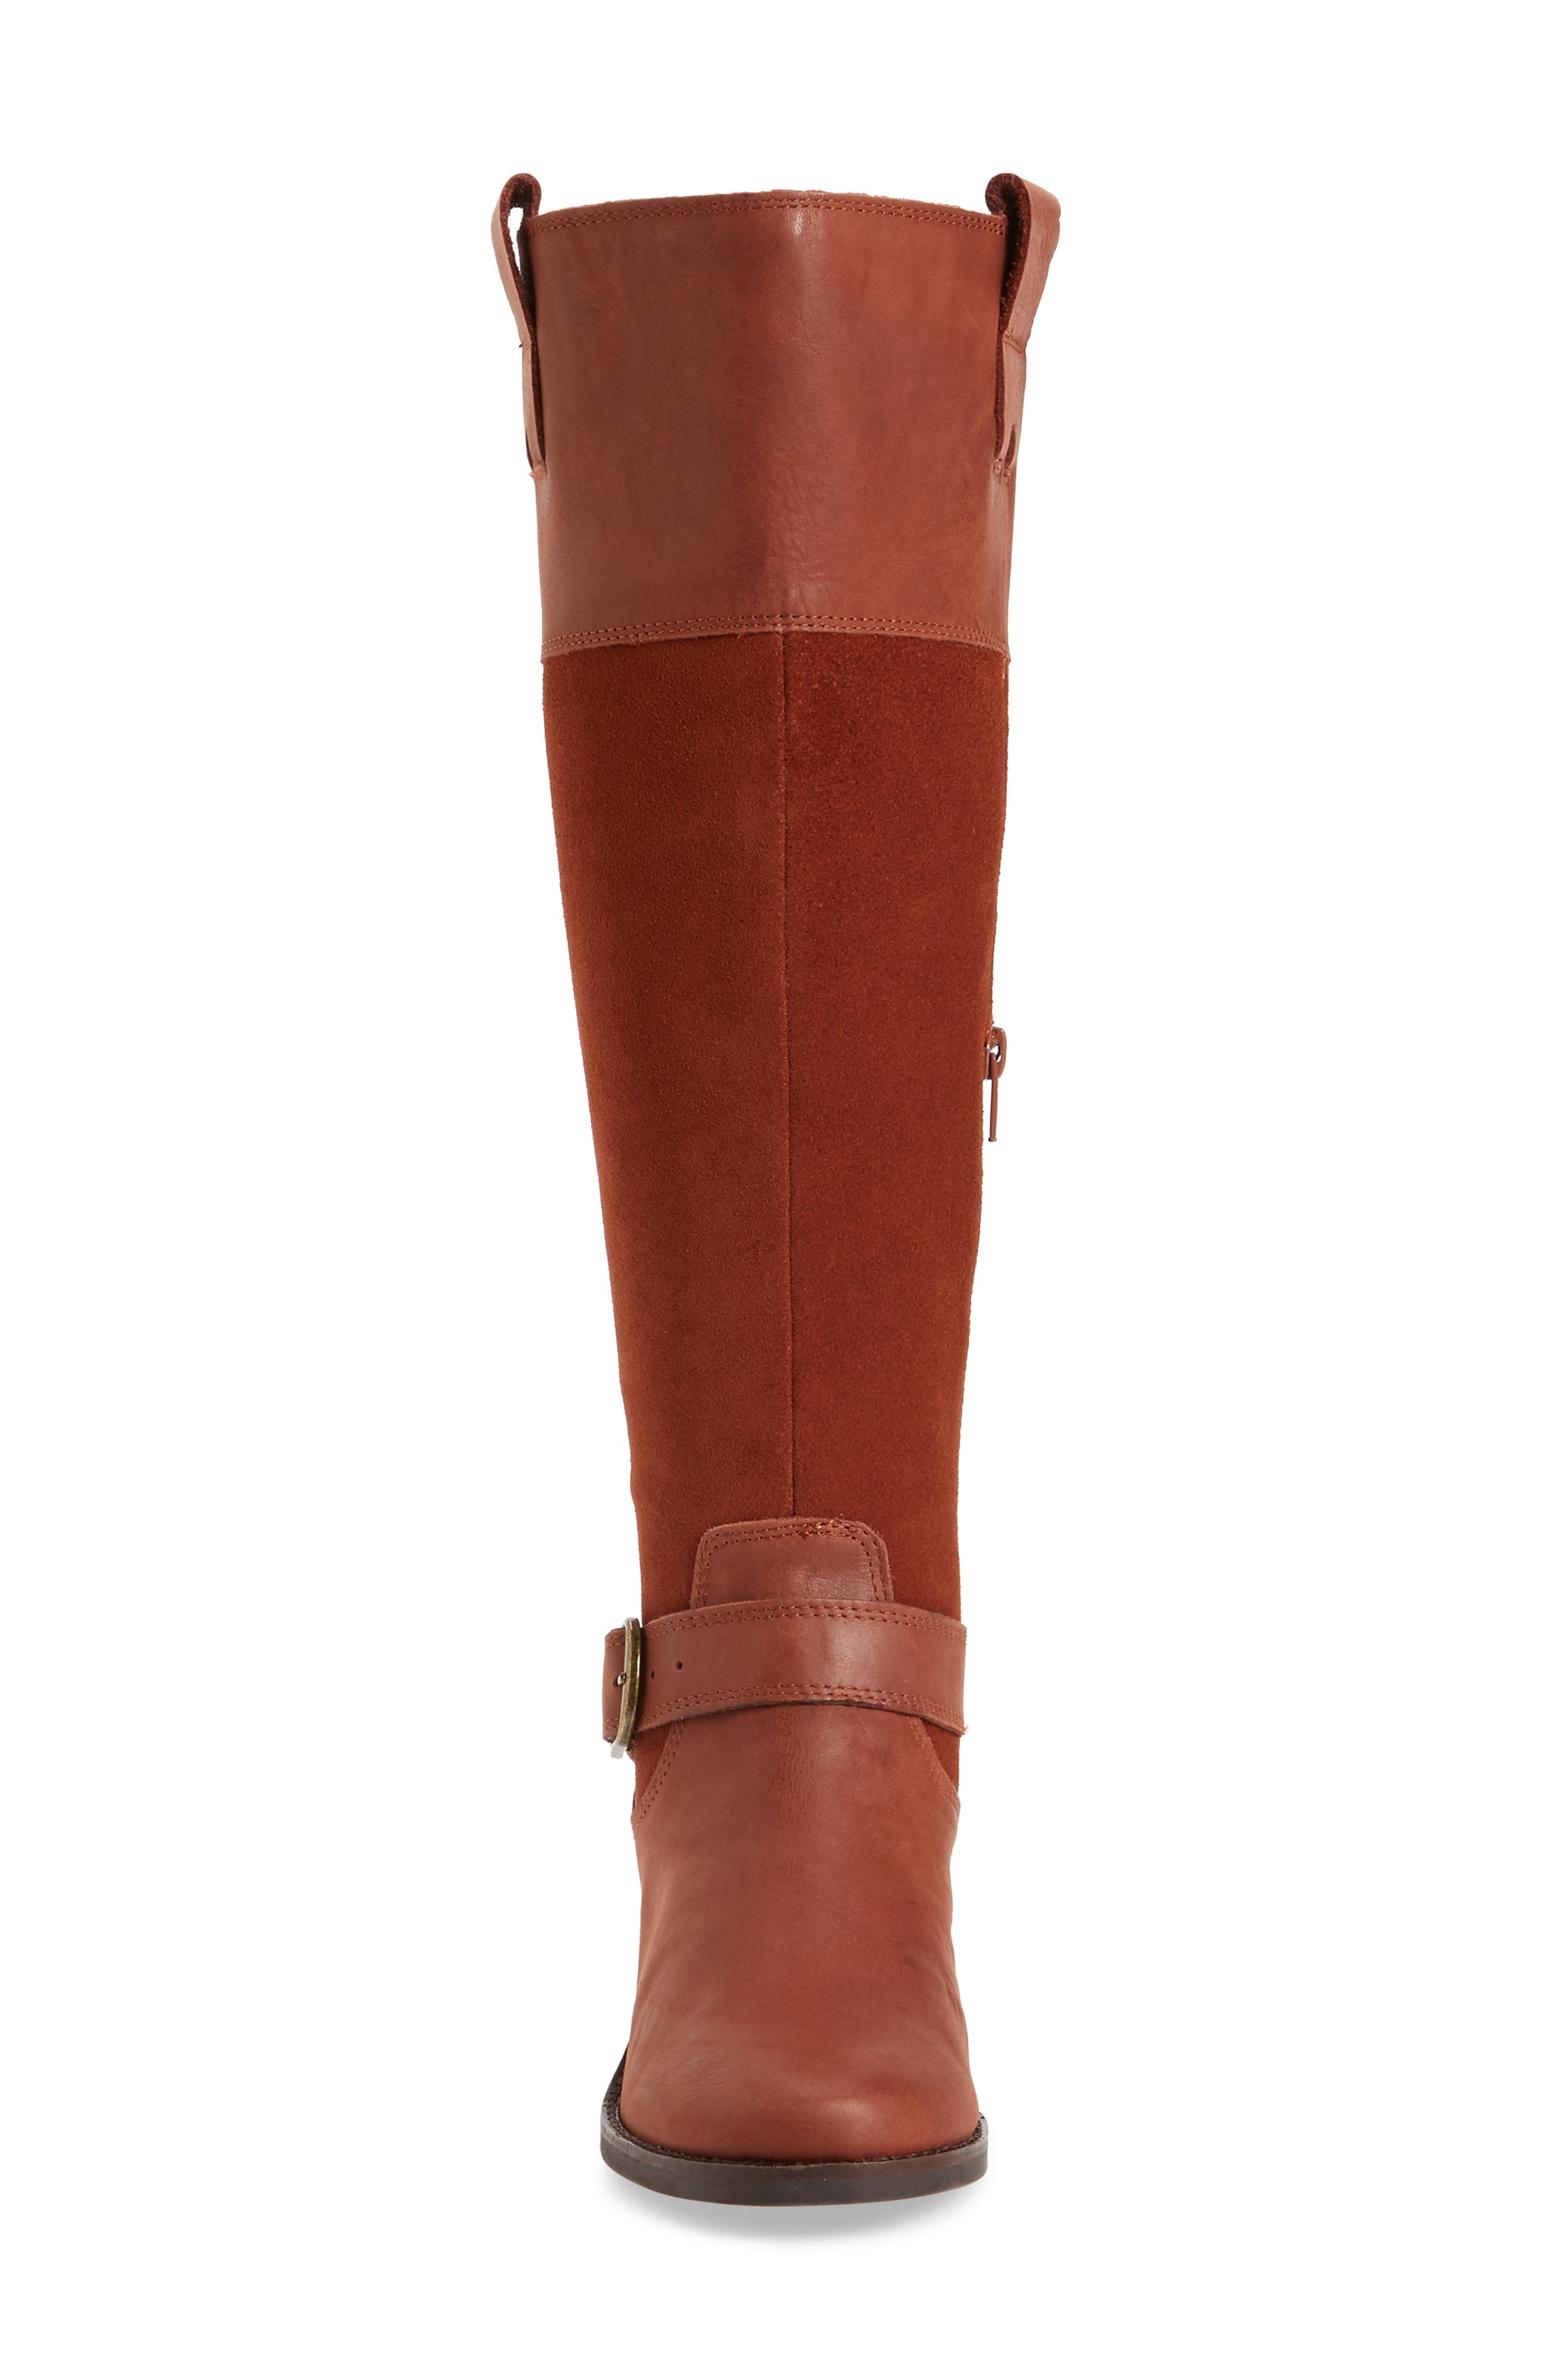 Kailan Ankle Strap Tall Boot,                             Alternate thumbnail 4, color,                             Rye Leather